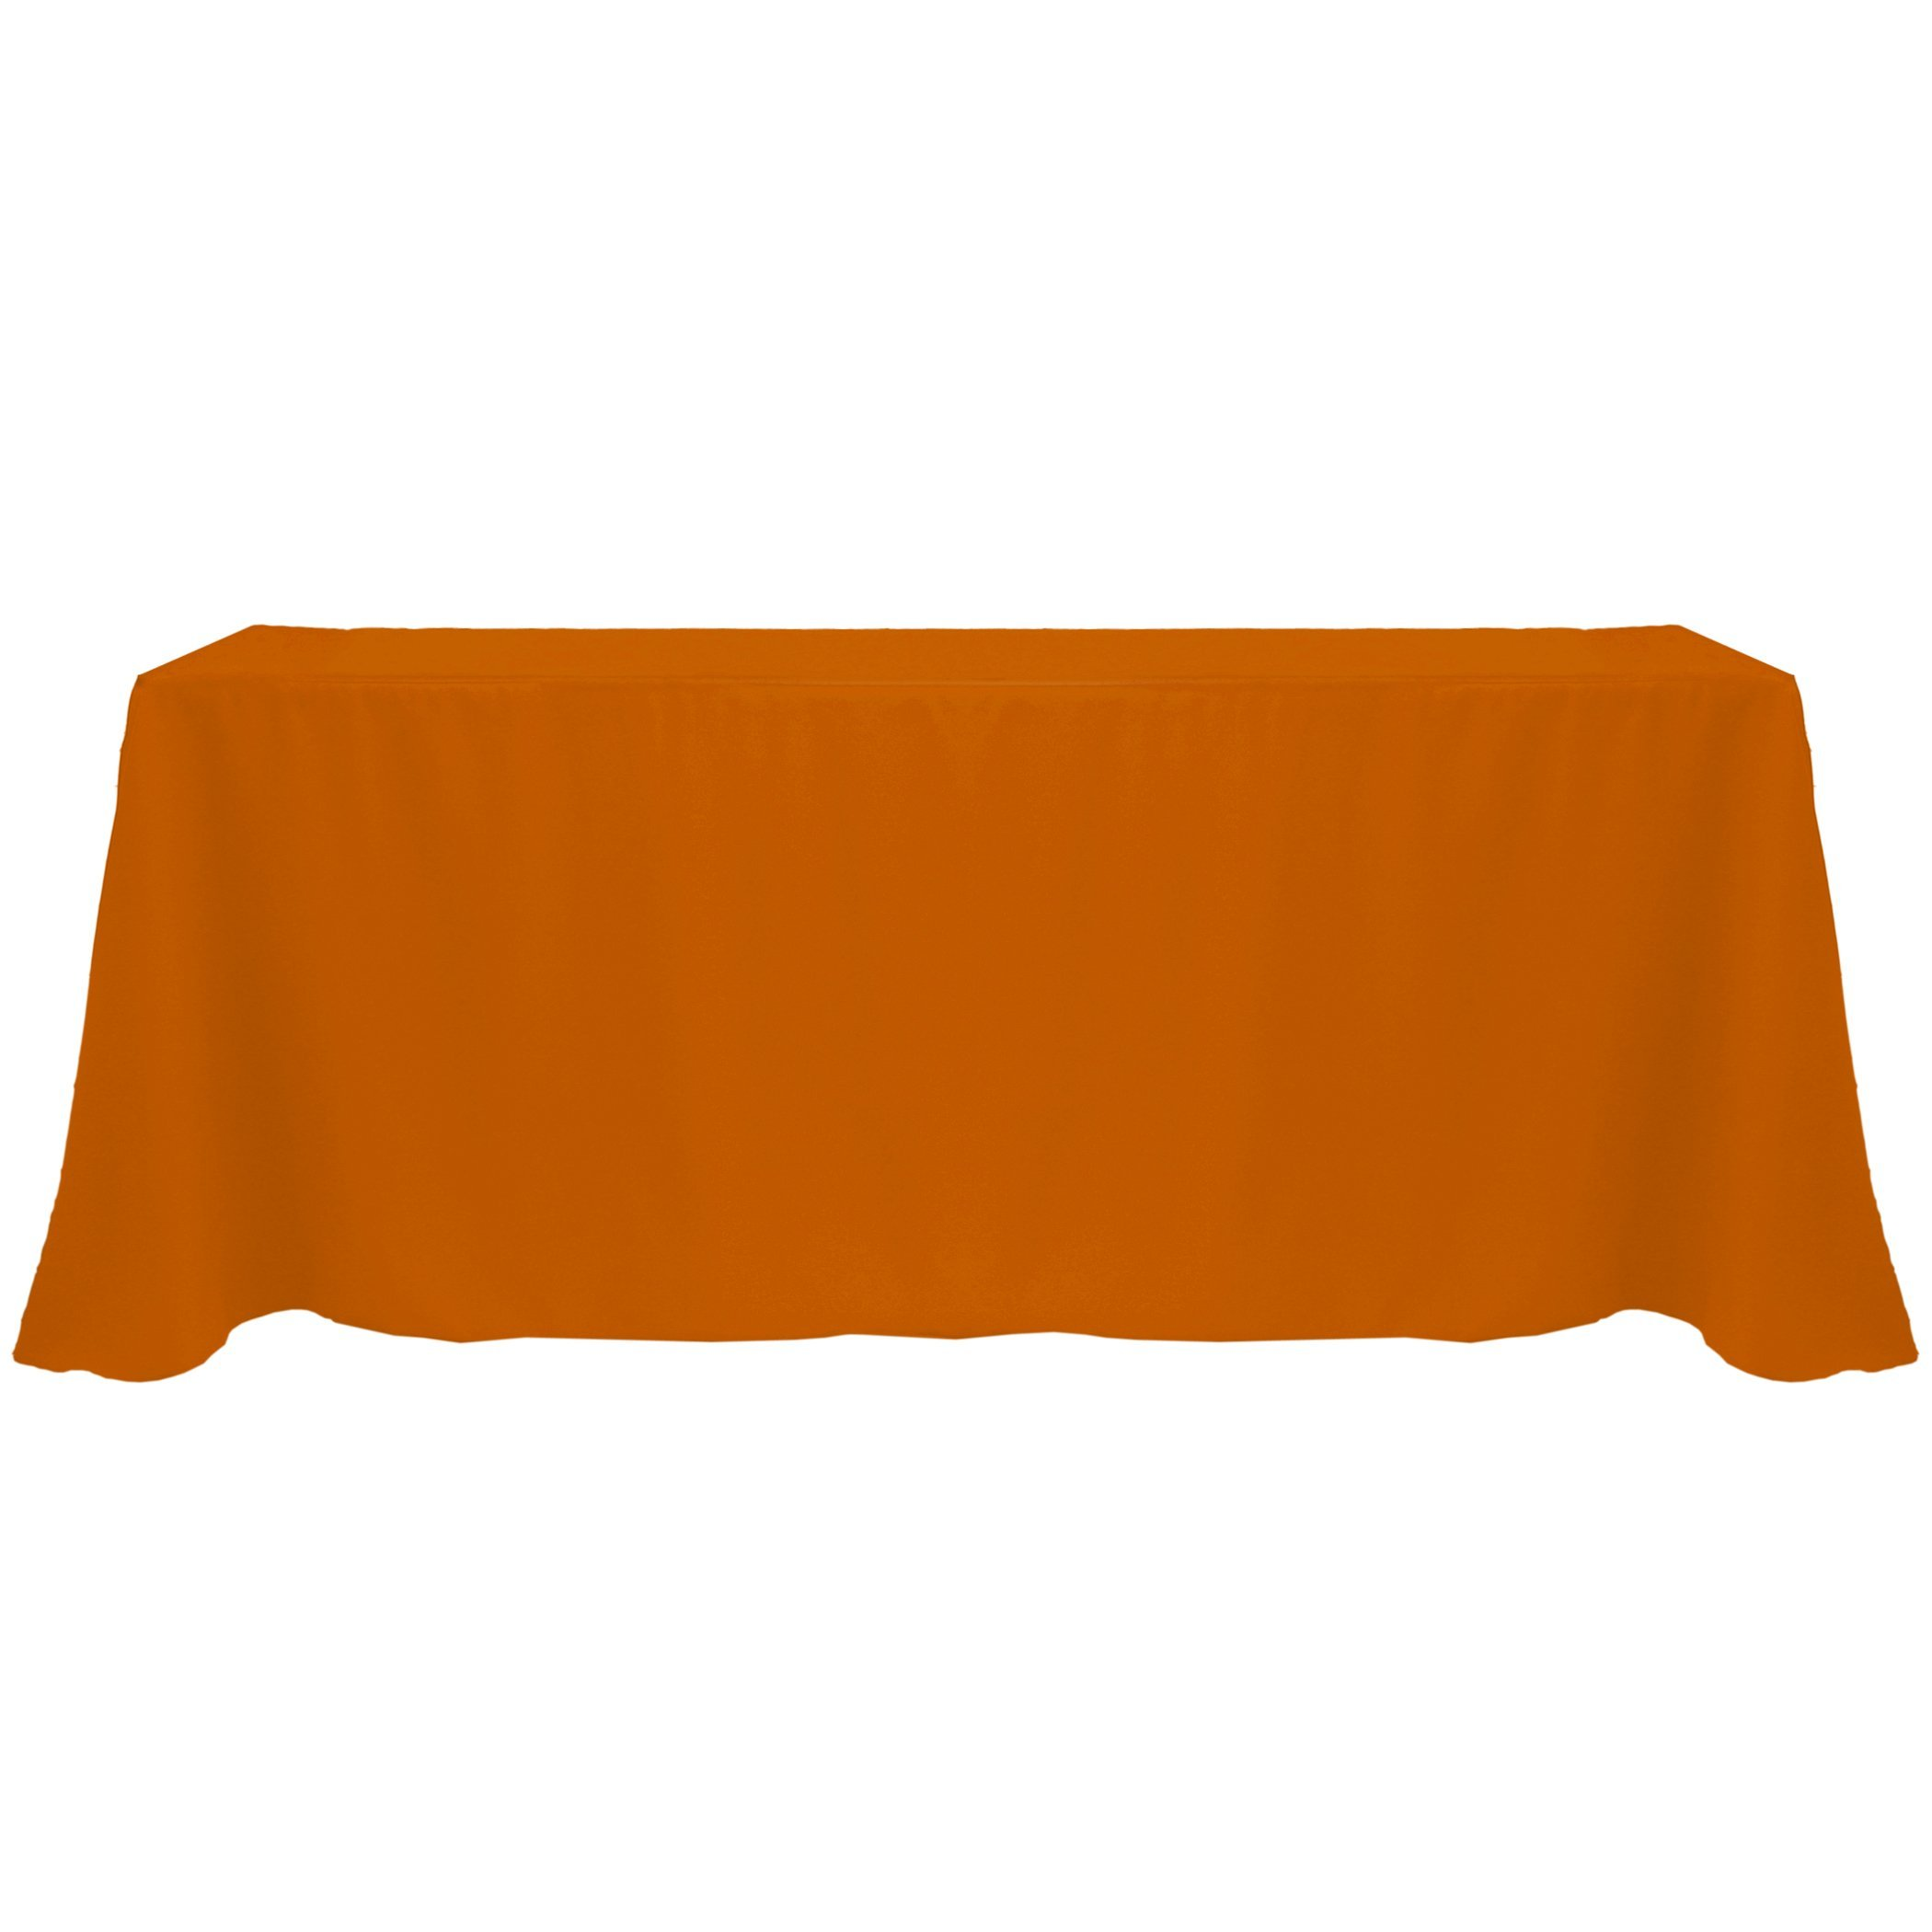 Ultimate Textile (20 Pack) 90 x 132-Inch Rectangular Polyester Linen Tablecloth with Rounded Corners - for Wedding, Restaurant or Banquet use, Burnt Orange by Ultimate Textile (Image #1)